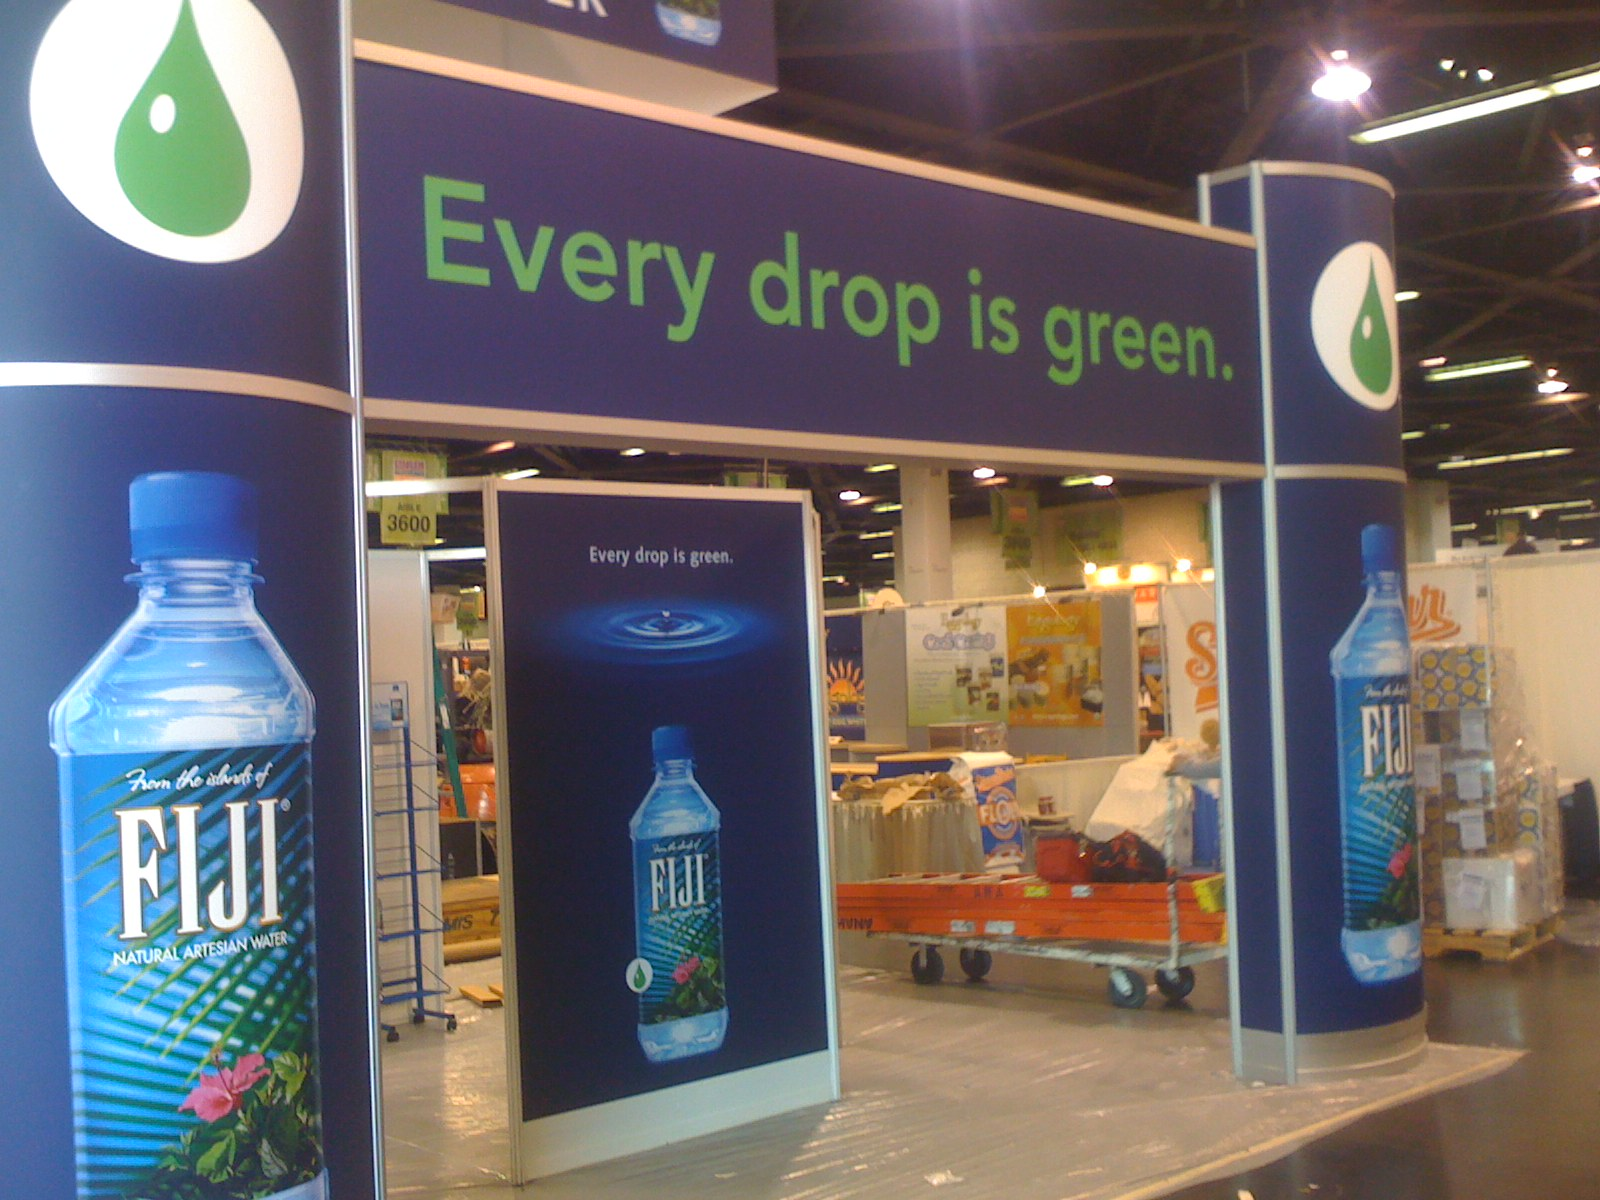 Fiji water and corporate social responsibility green makeover or greenwashing